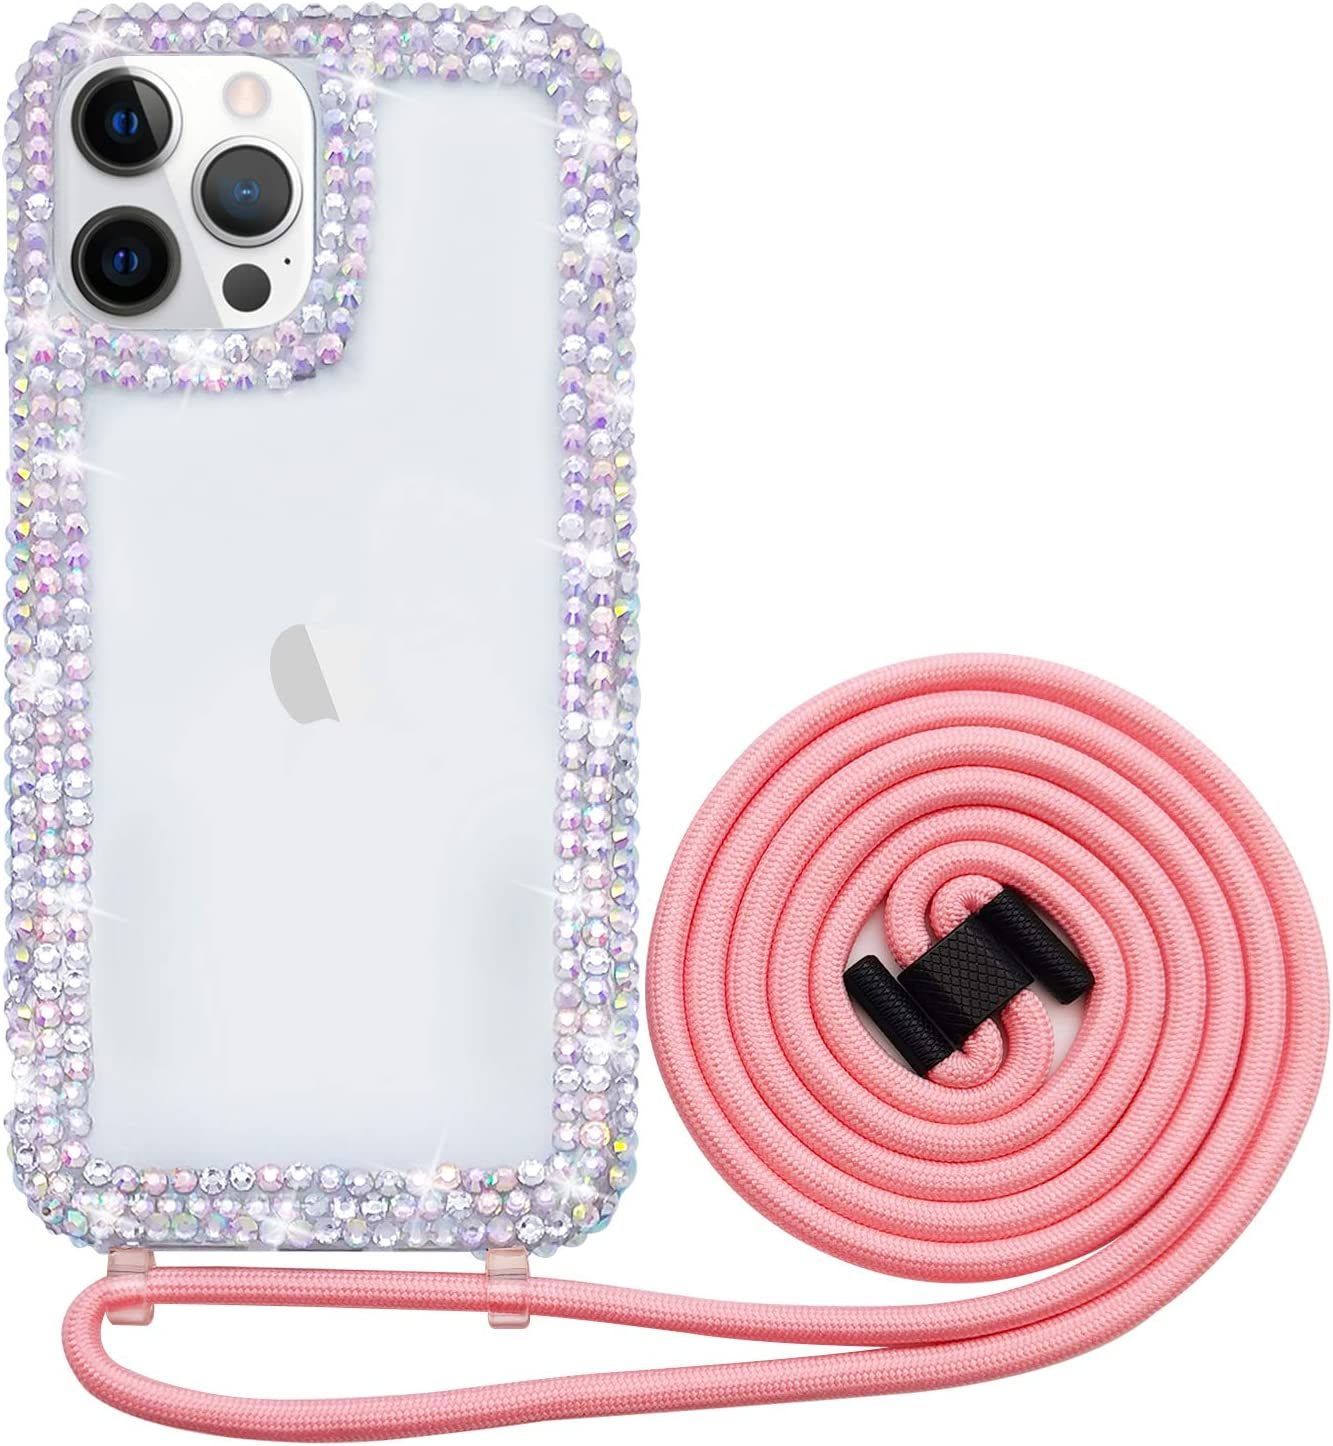 Bonitec Compatible with iPhone 12 Pro Crossbody Case 3D Glitter Sparkle Bling Luxury Shiny Crystal Rhinestone Diamond Clear Protective Girly Cover Adjustable Neck Strap Lanyard Band for Women